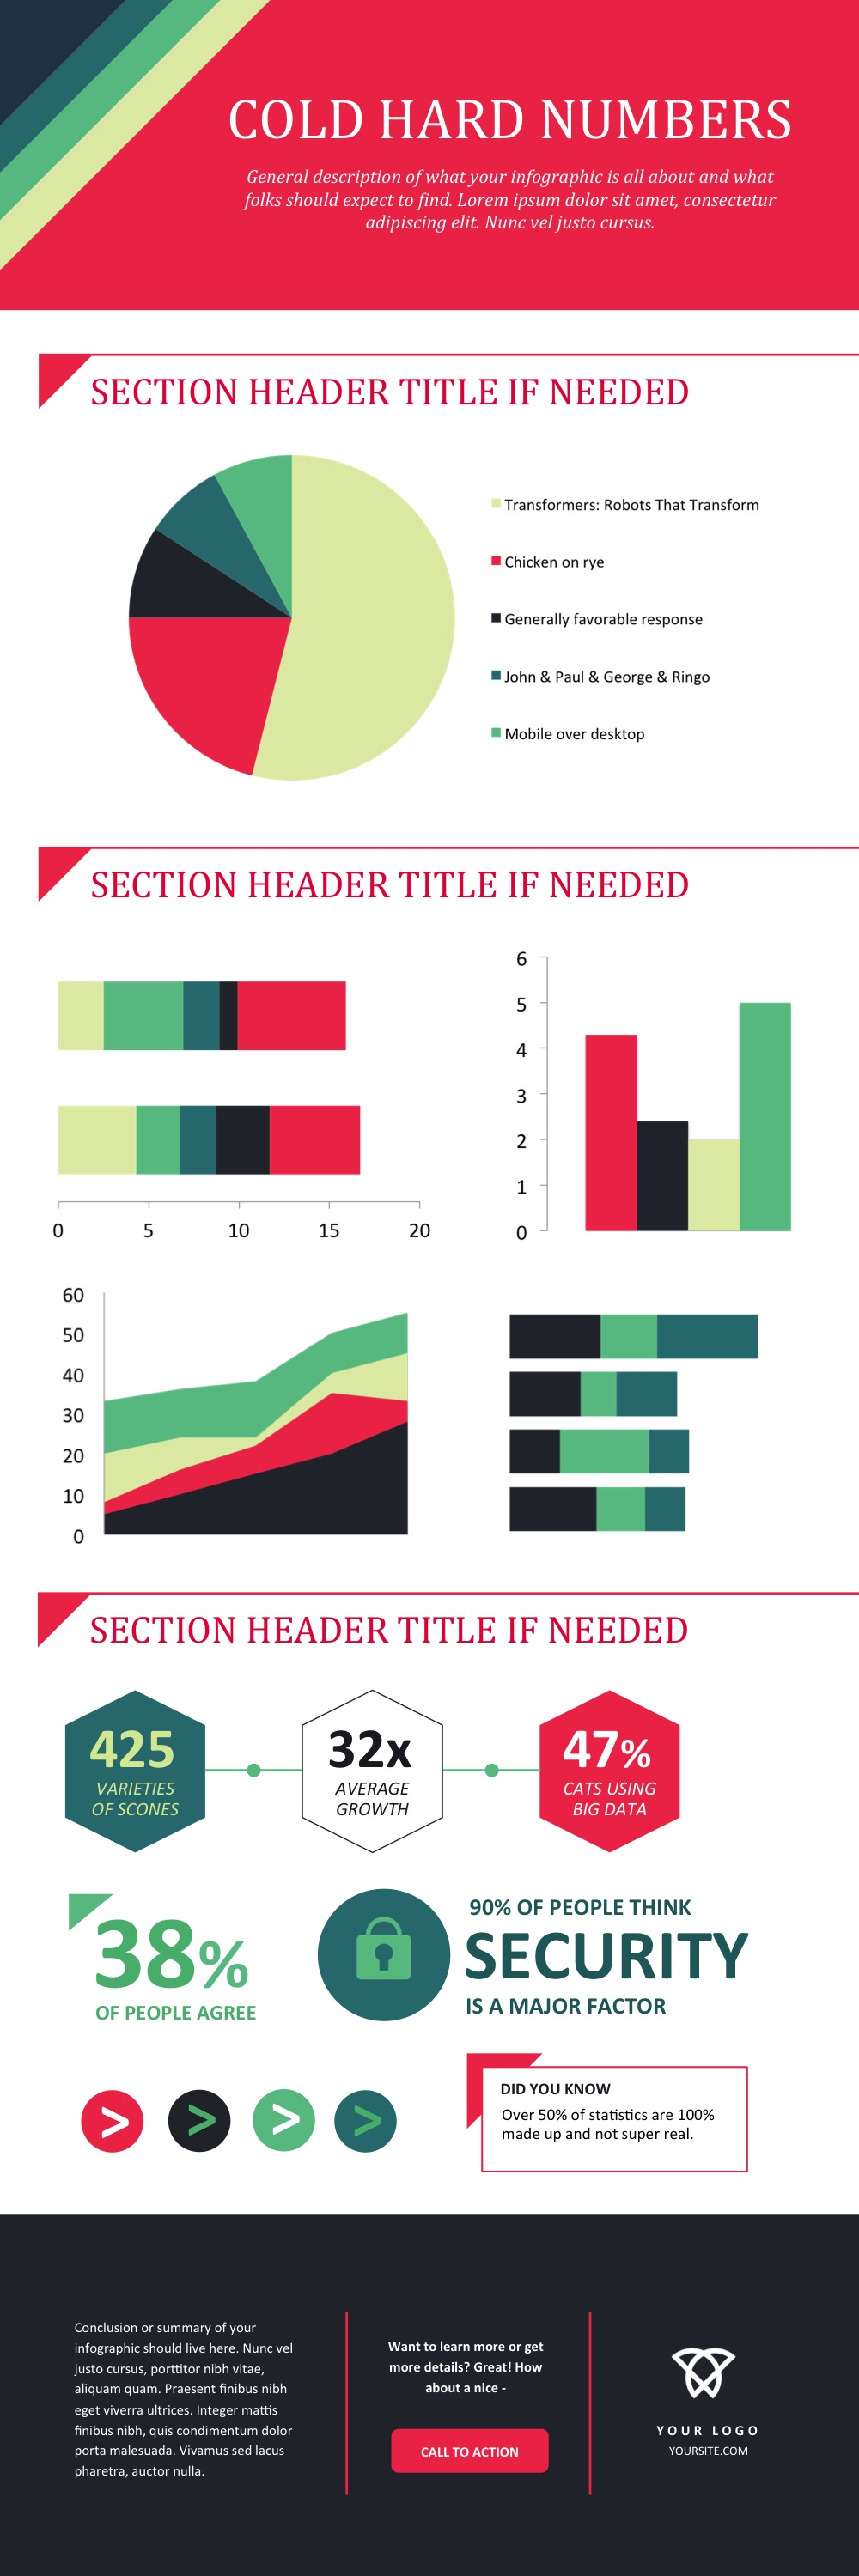 how to make an infographic in under an hour 15 free infographic